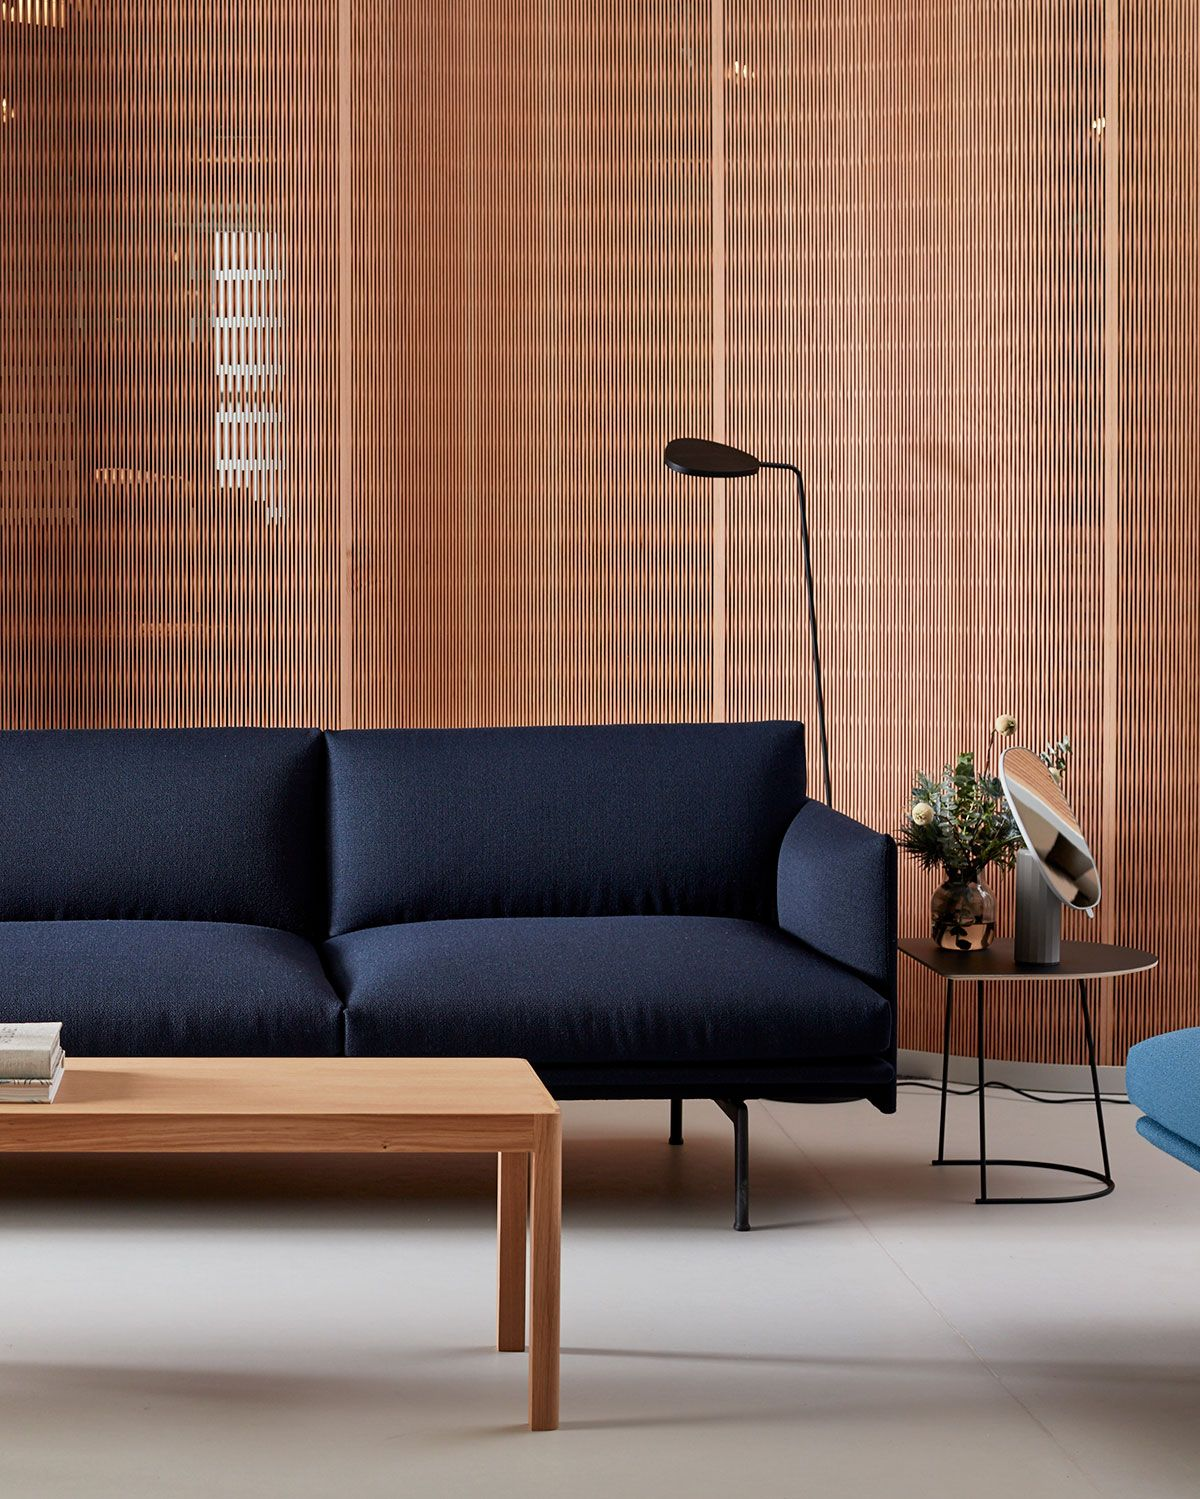 Full Size of Muuto Sofa Workshop Sofabord Airy Large Outline Uk Dba Compose 3 Seater Leather Table Rest Sale Furniture List Connect Review Around Modular Modernly Timeless Sofa Muuto Sofa